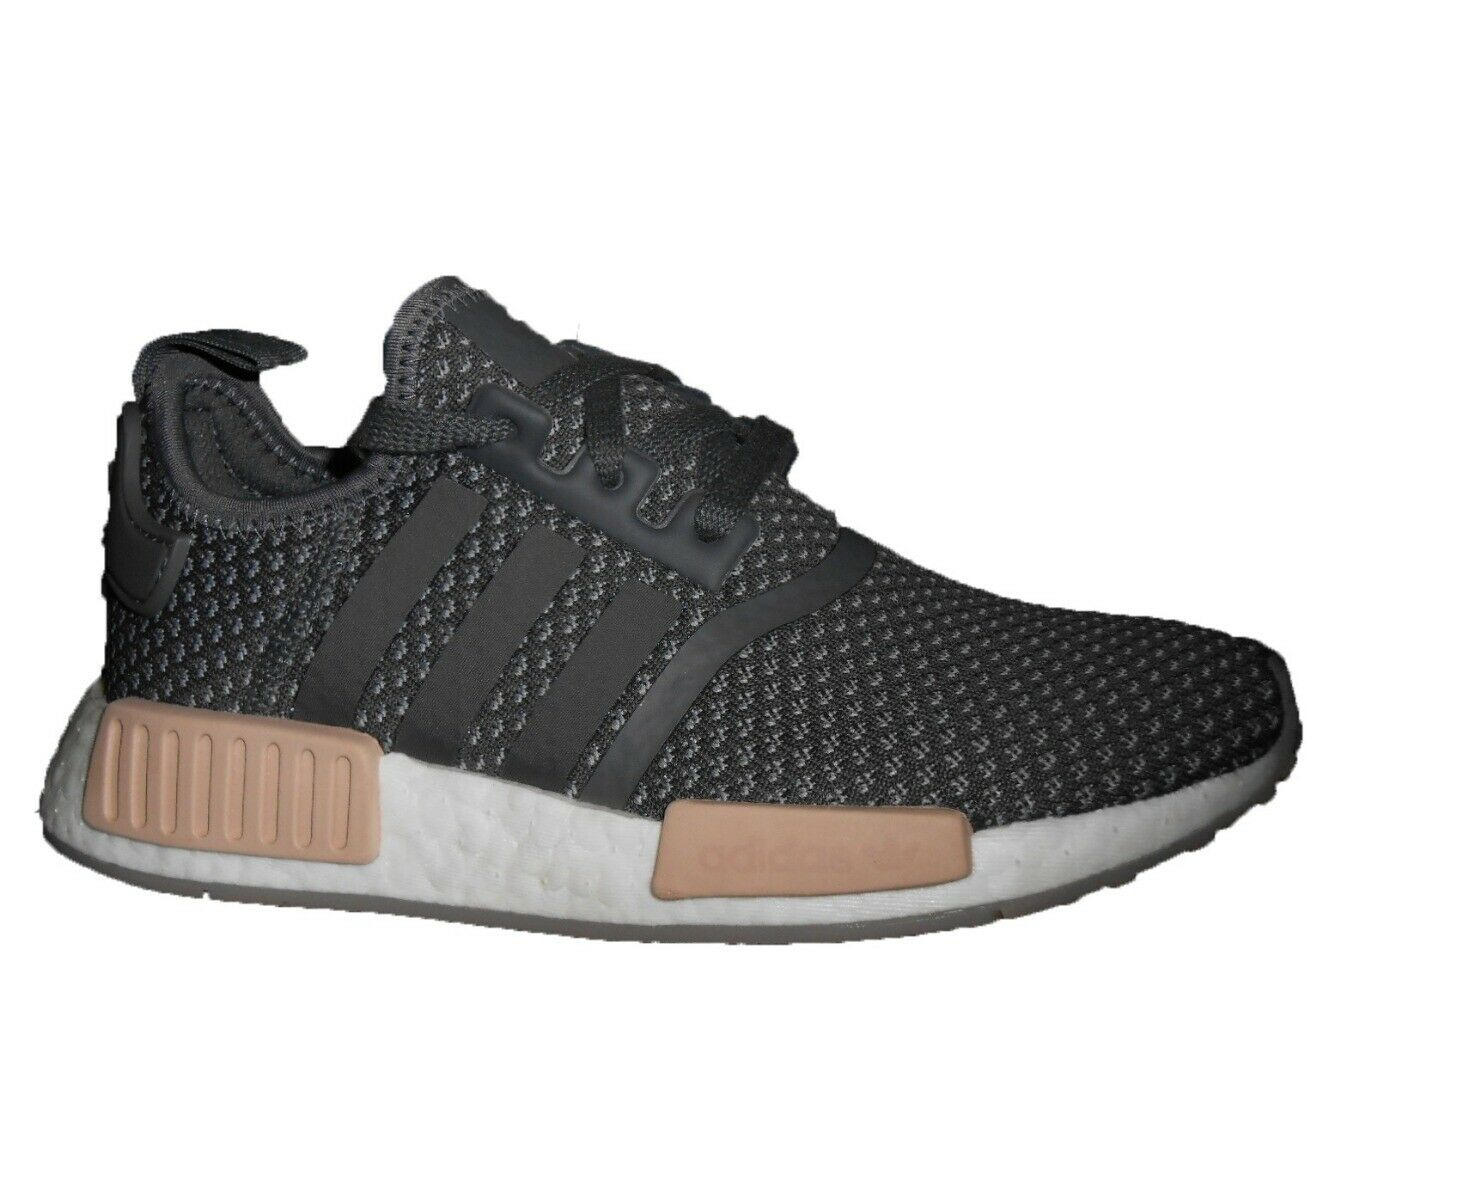 Adidas NMD_R1 Womens Trainers shoes Size 4.5 New BB9091